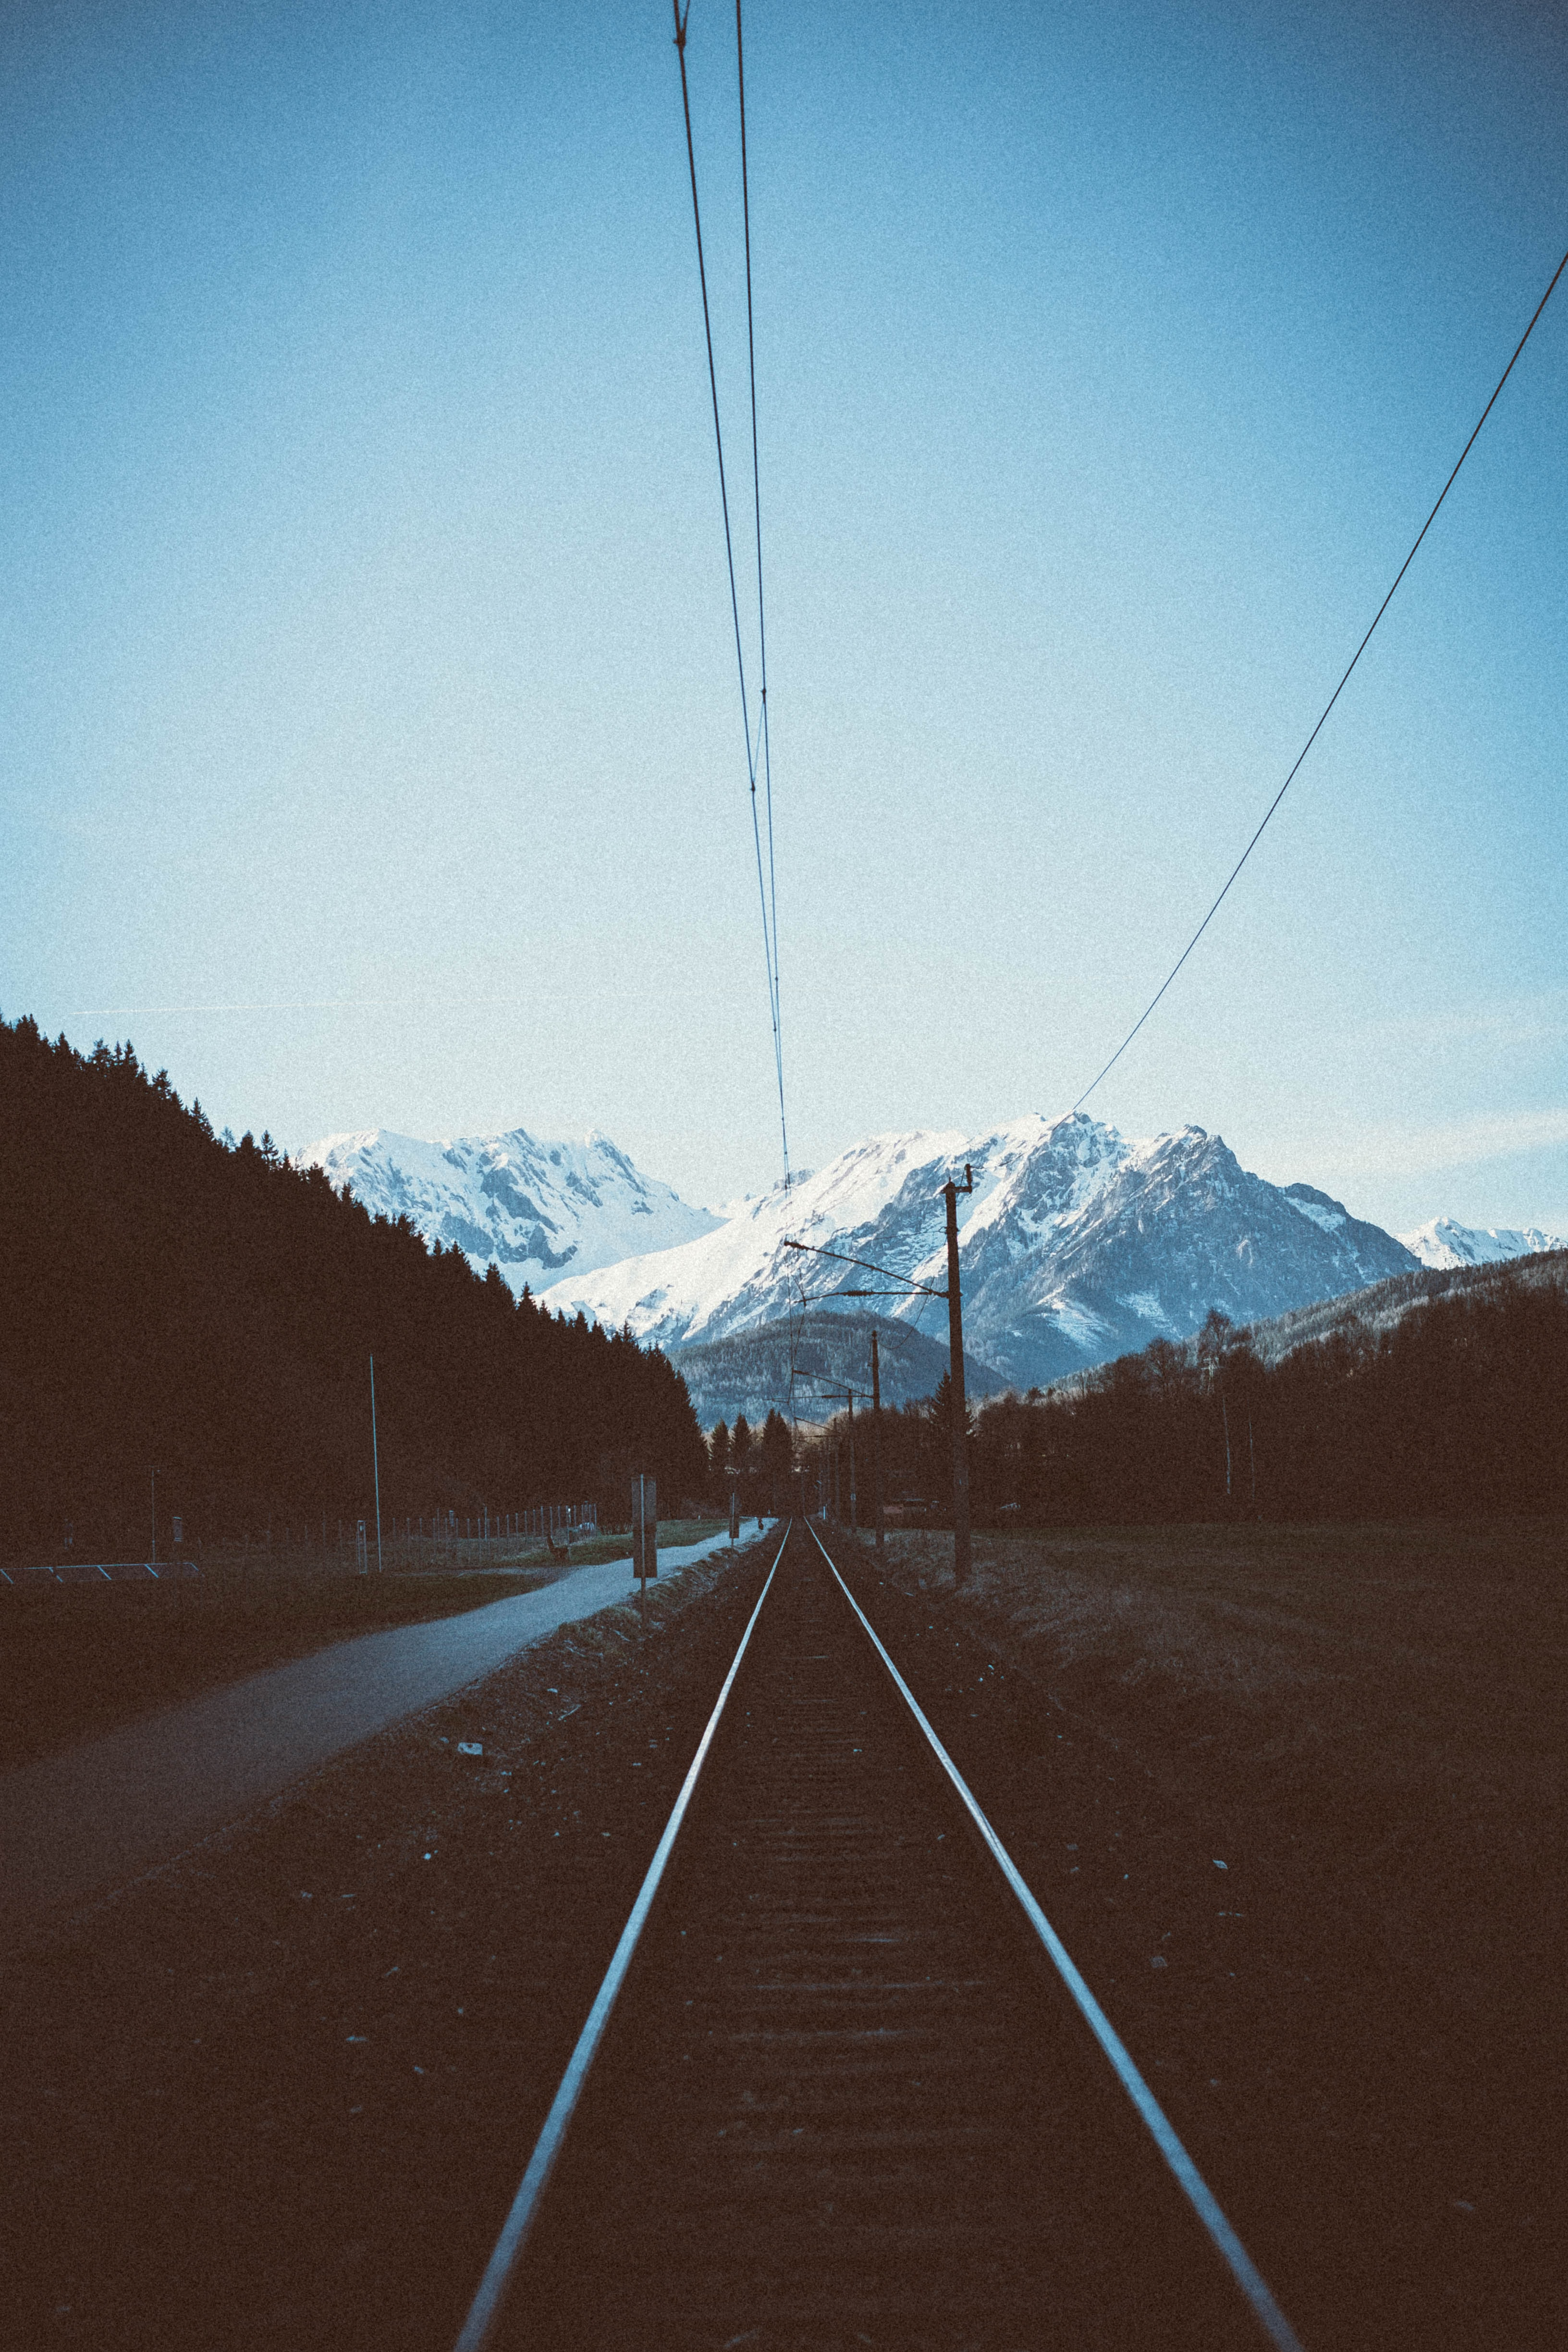 train tracks near road with snow capped mountains background